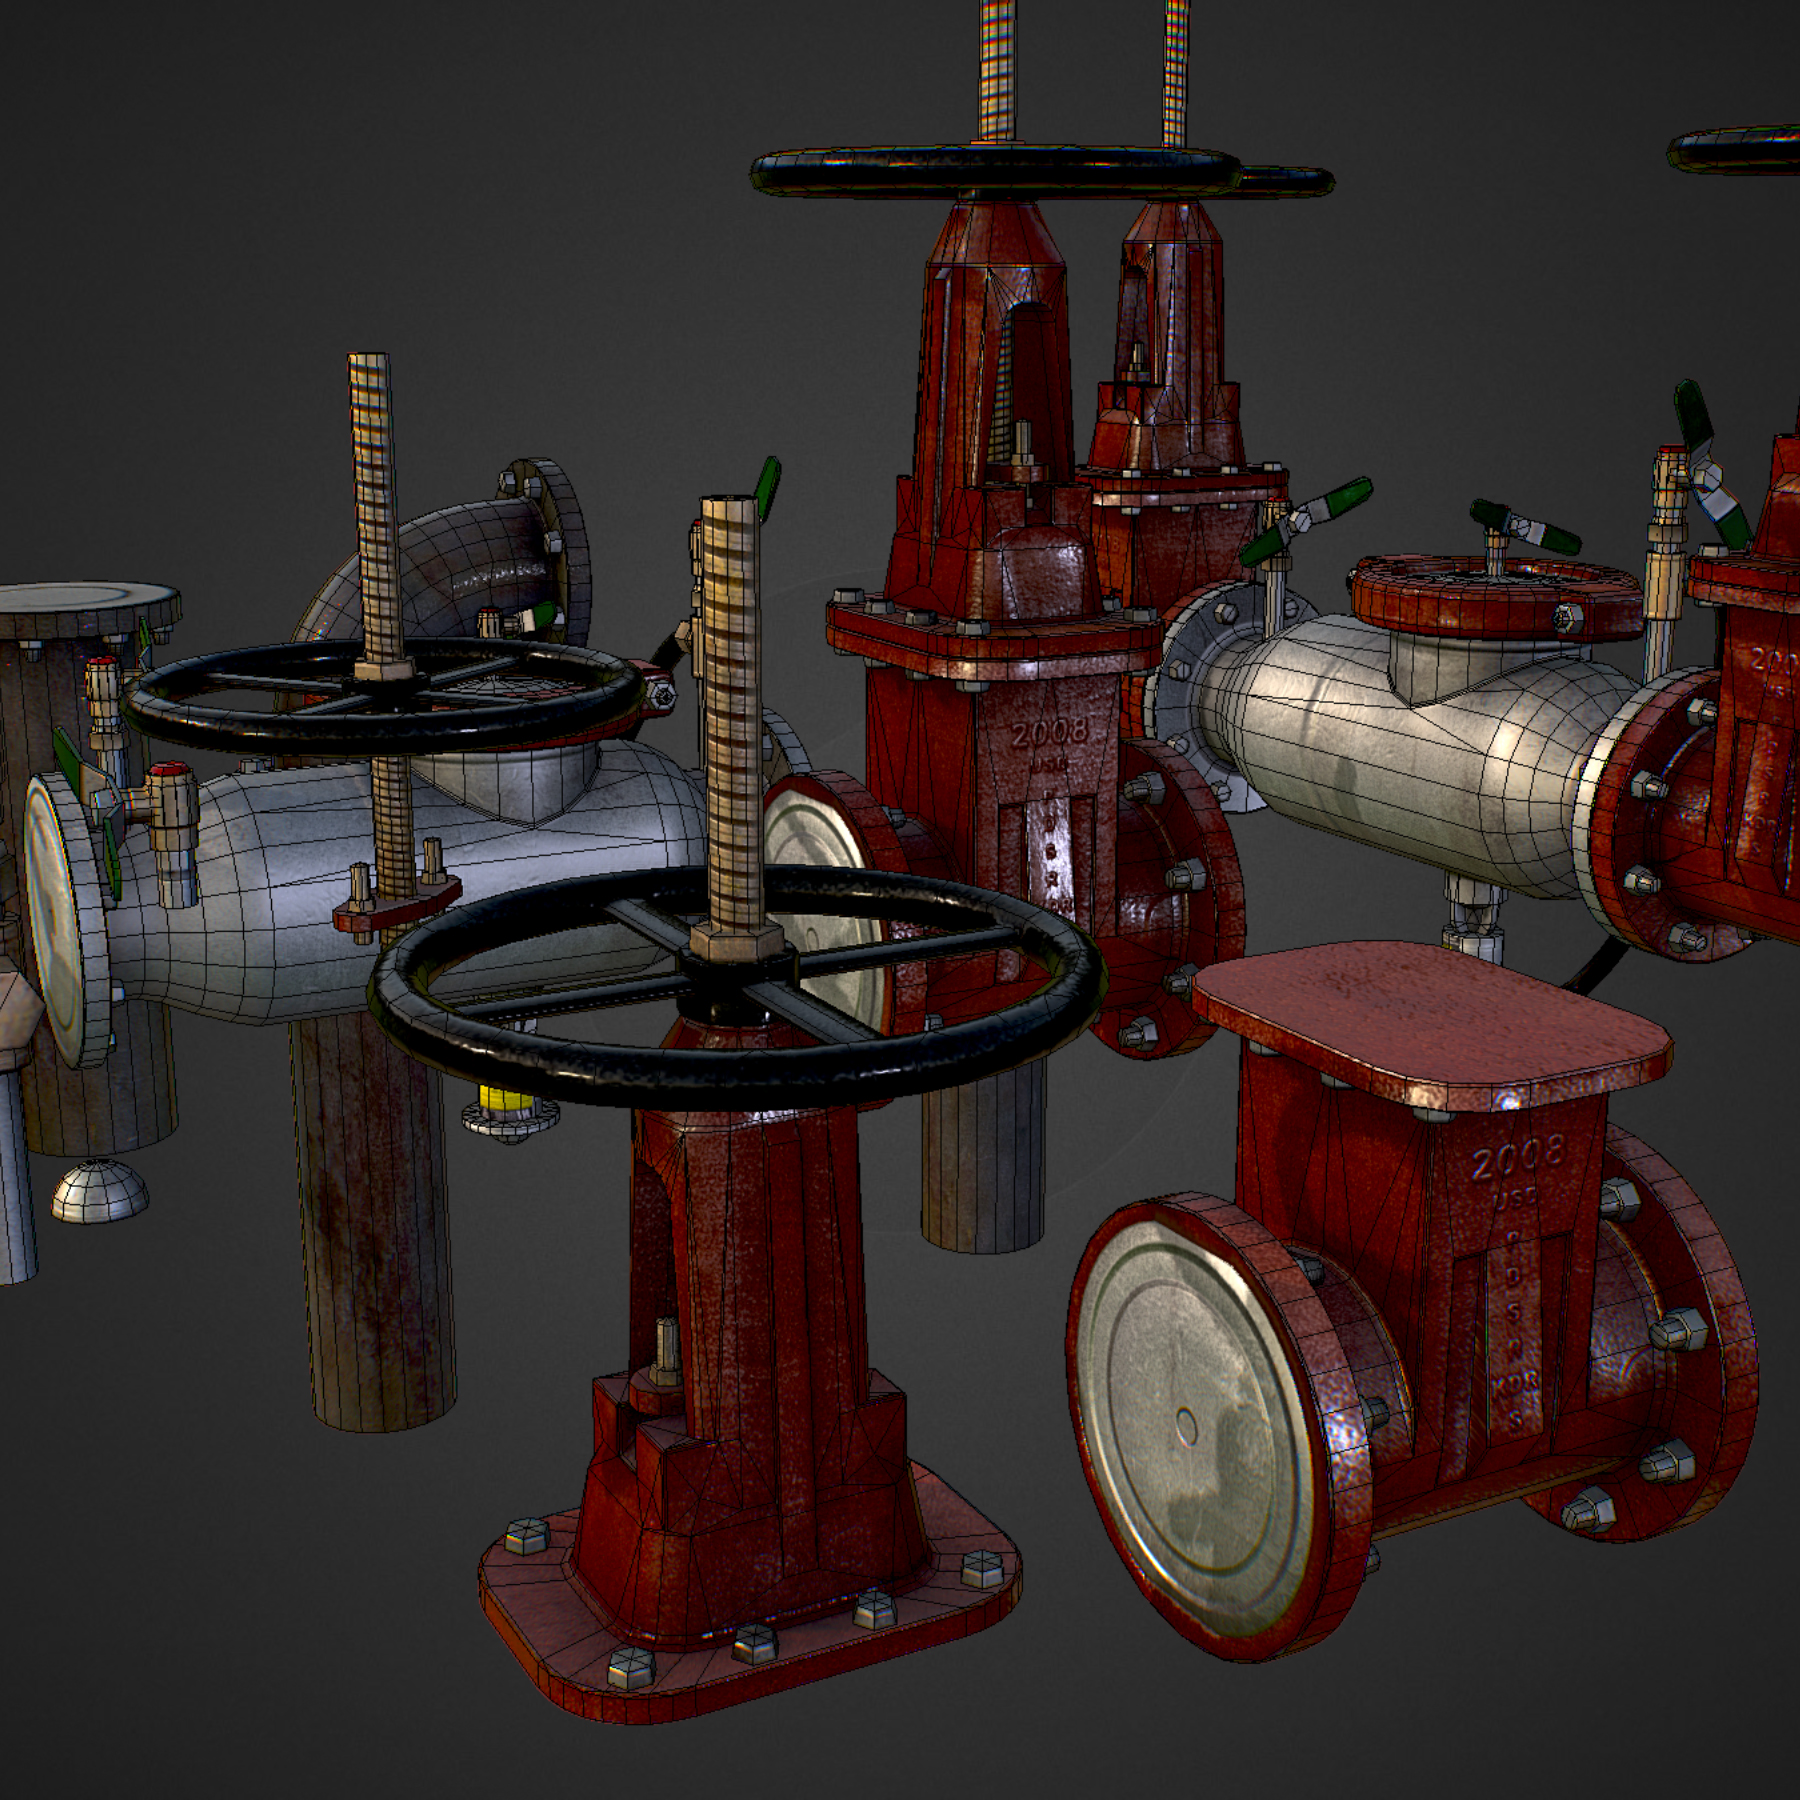 low poly game backflow water pipe constructor 3d model max  fbx ma mb tga targa icb vda vst pix obj 272486